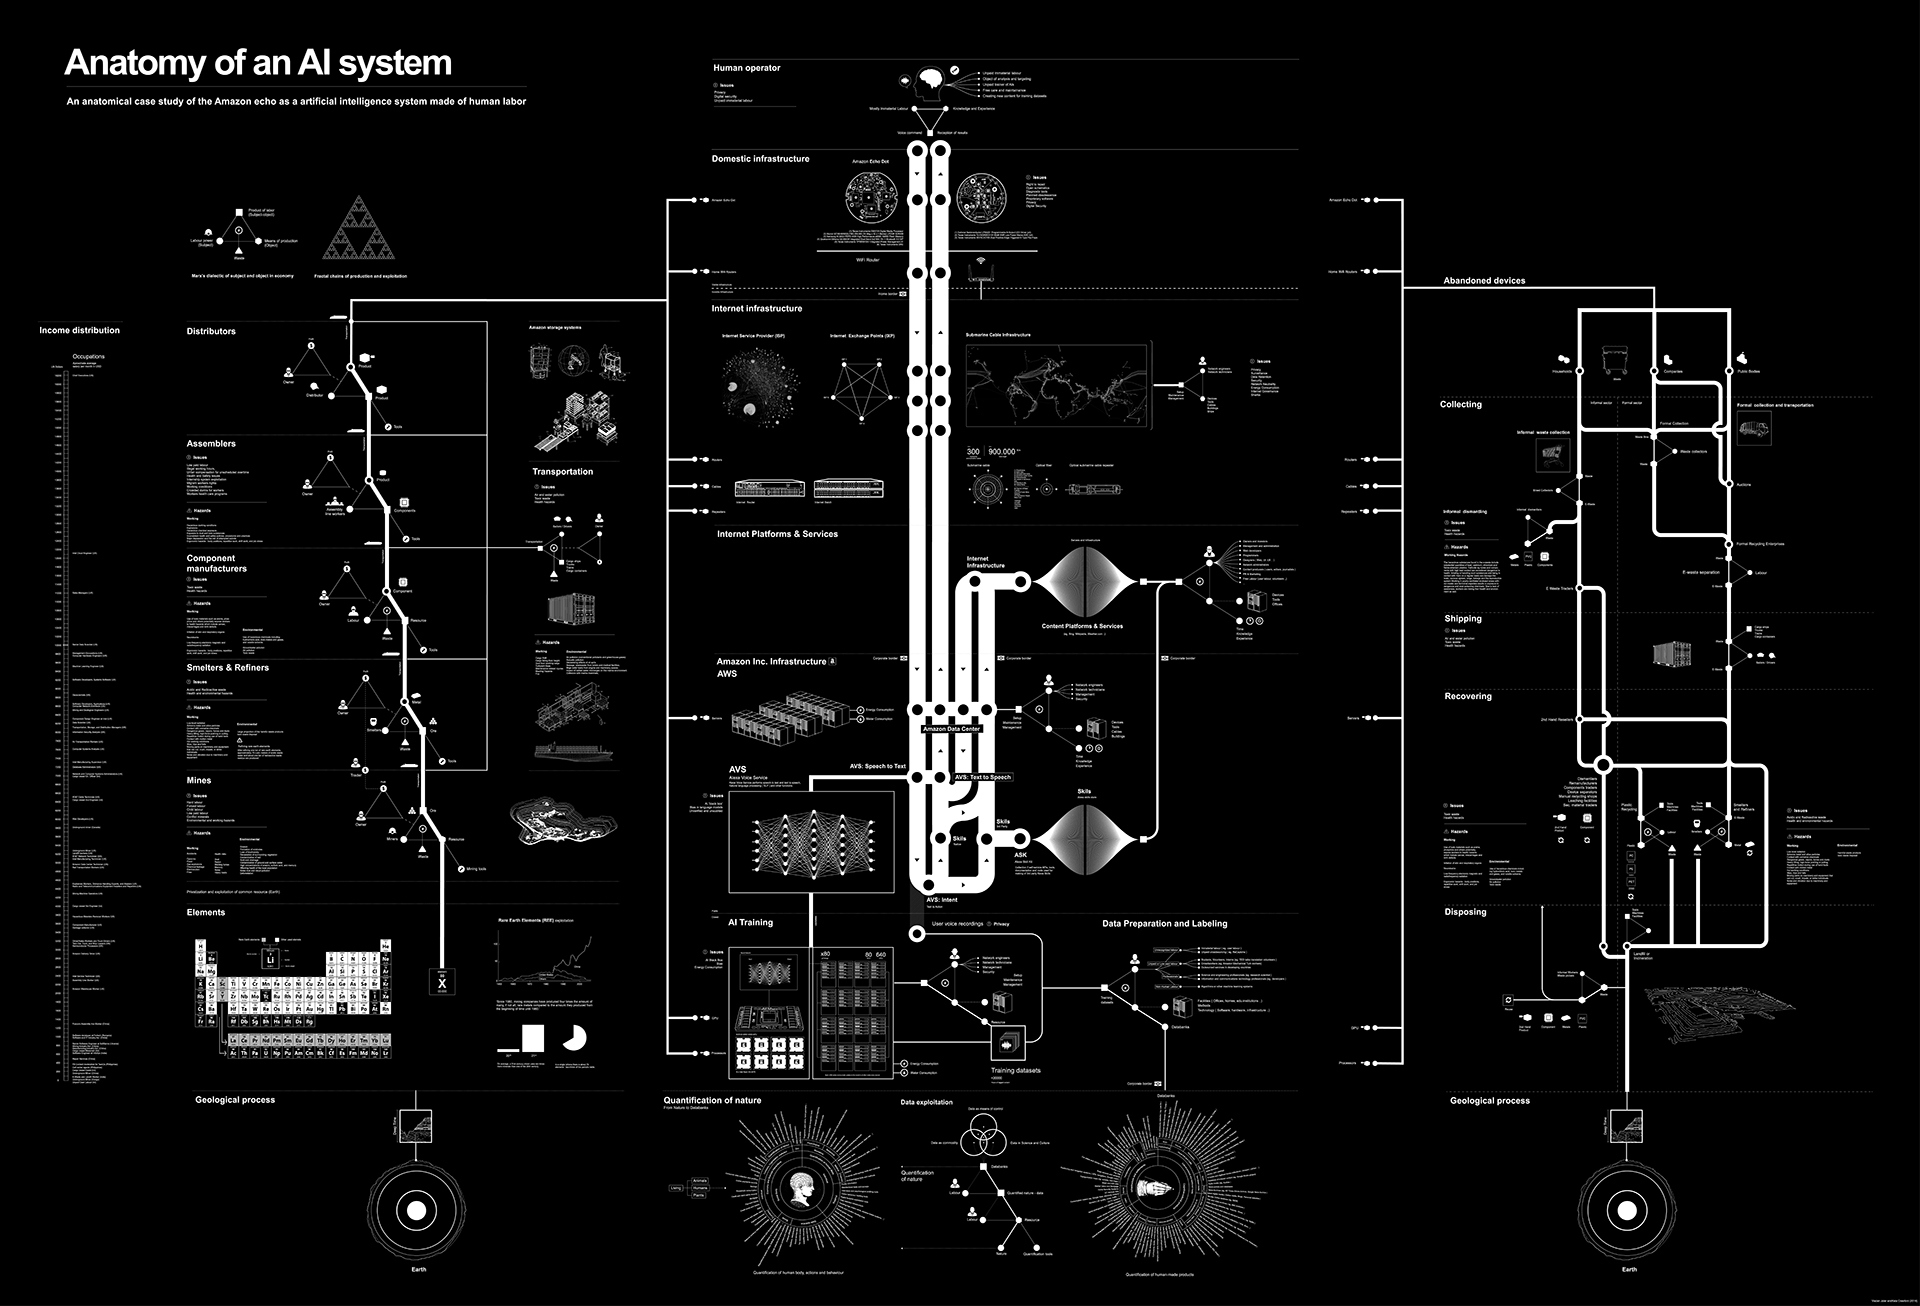 Anatomy of an AI System map